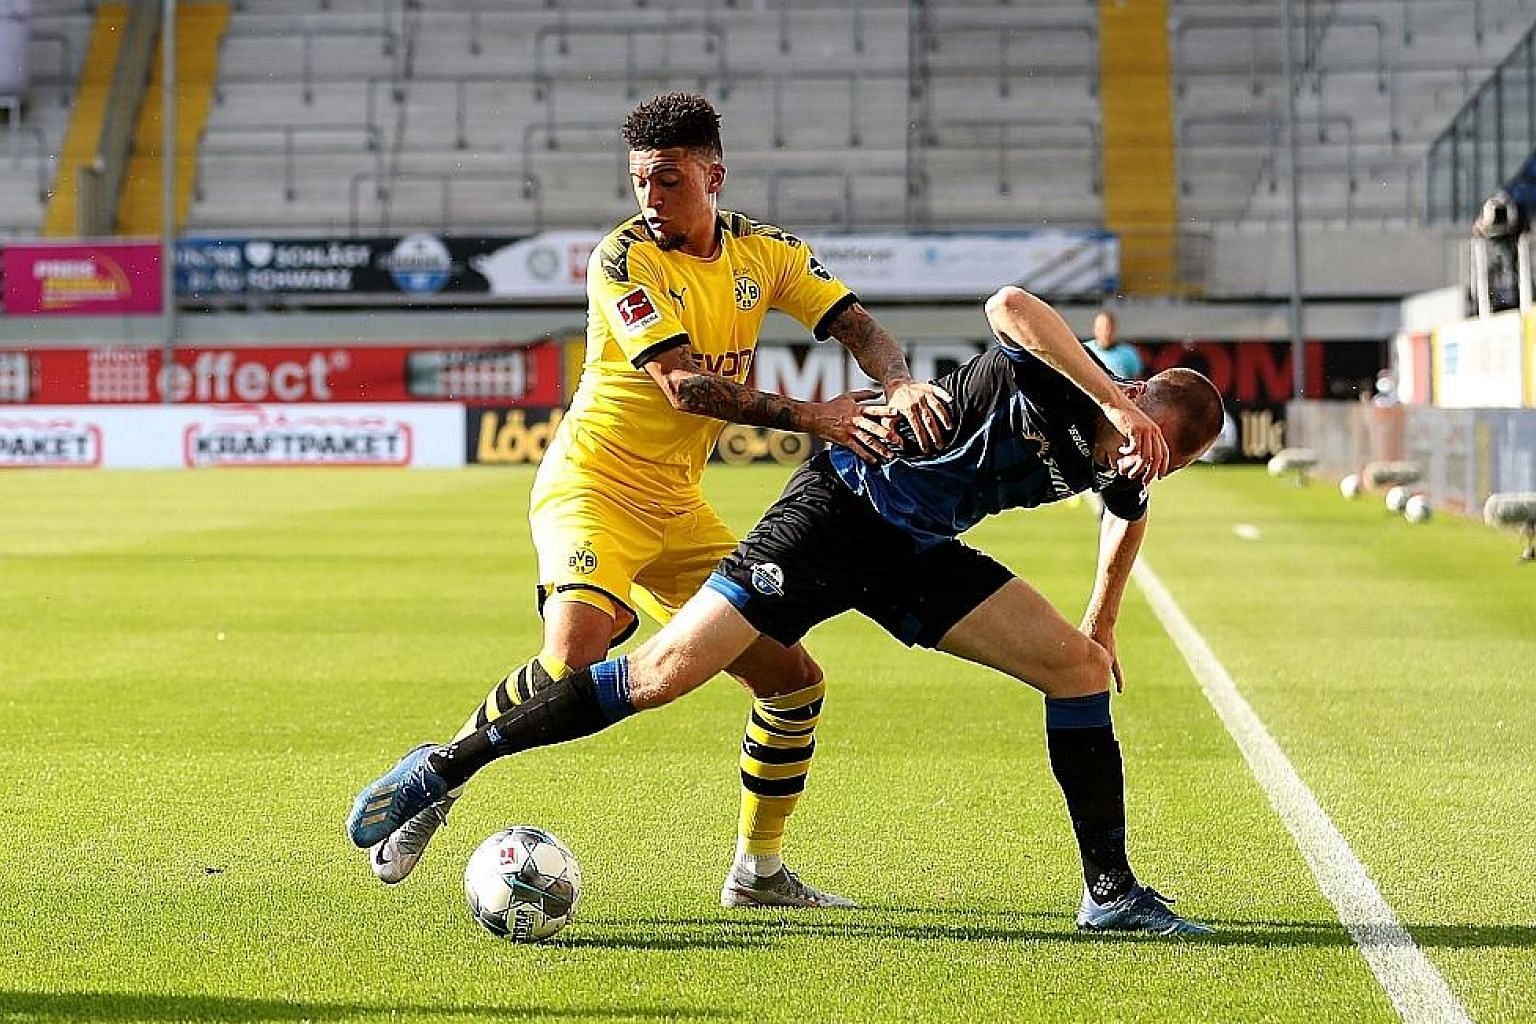 Jadon Sancho (left) fighting for the ball with Sebastian Schonlau of Paderborn in Dortmund's 6-1 win. The 20-year-old Englishman, who was let go by Manchester City, netted his first hat-trick for the Bundesliga side. PHOTO: EPA-EFE